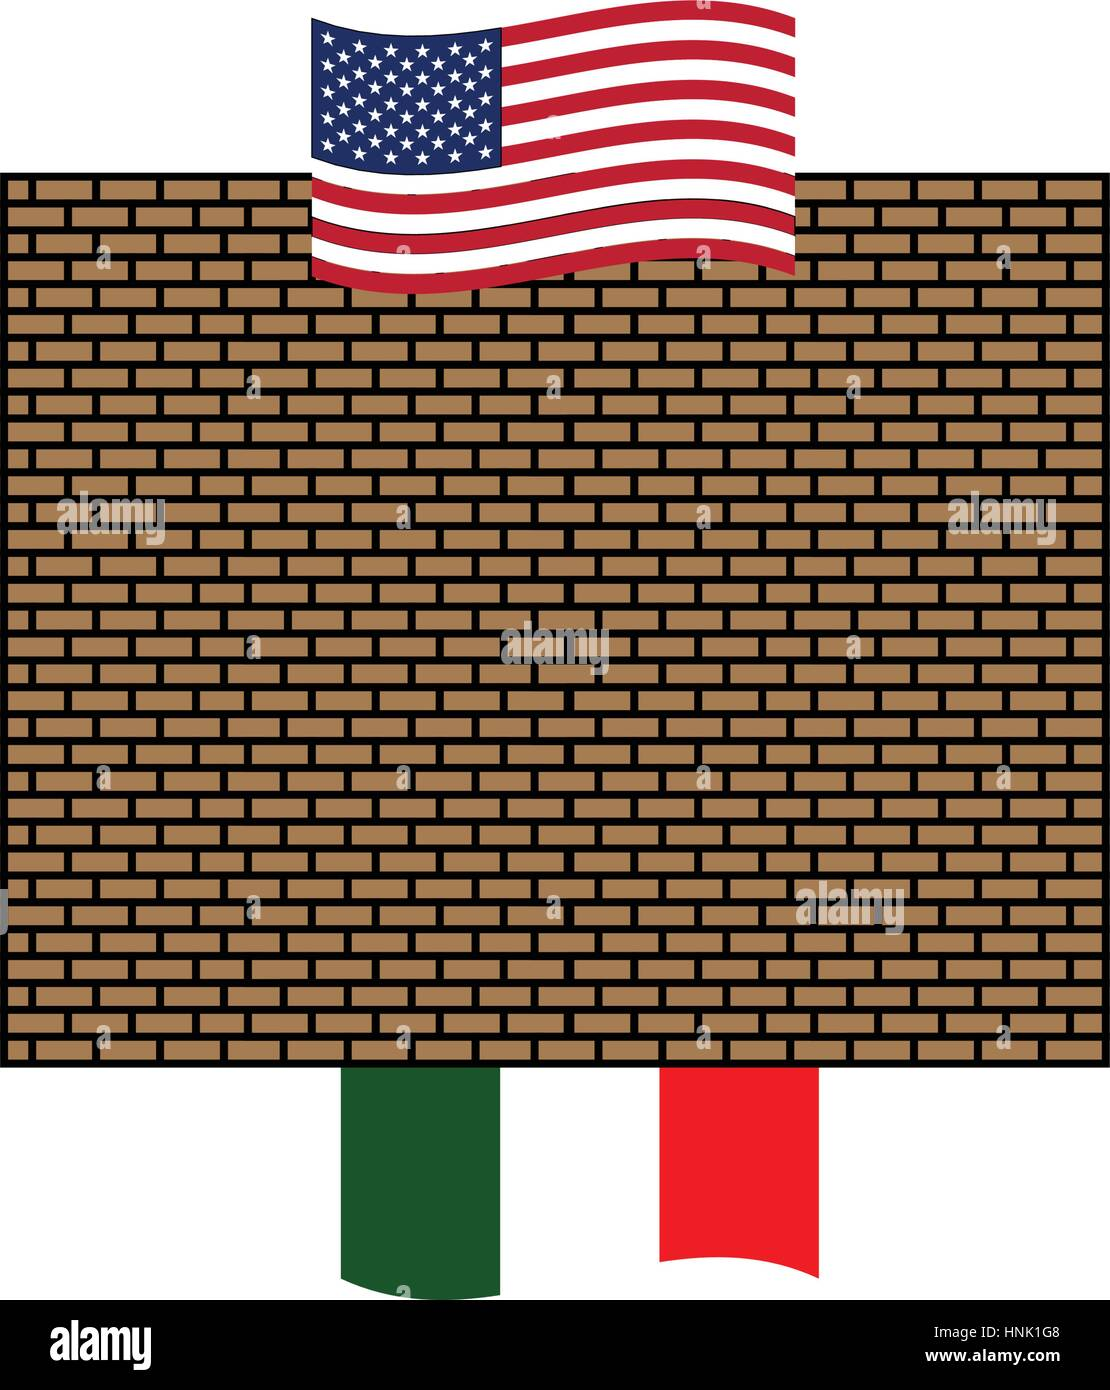 Symbolic wall between U.S.A. and Mexico, concept illustration design - Stock Vector